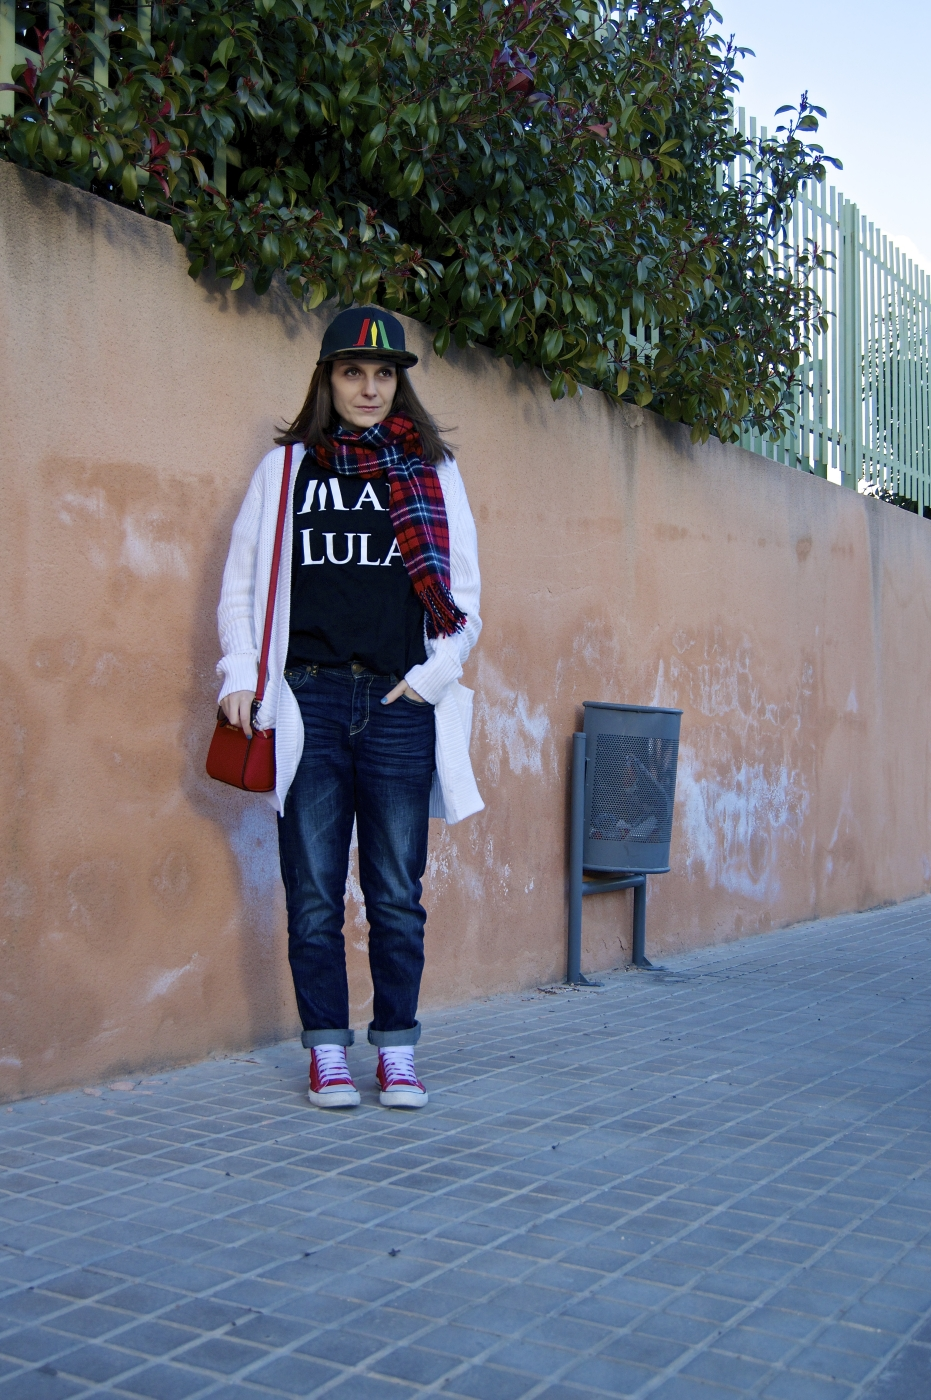 lara-vazquez-mad-lula-style-ootd-look-fashion-new-in